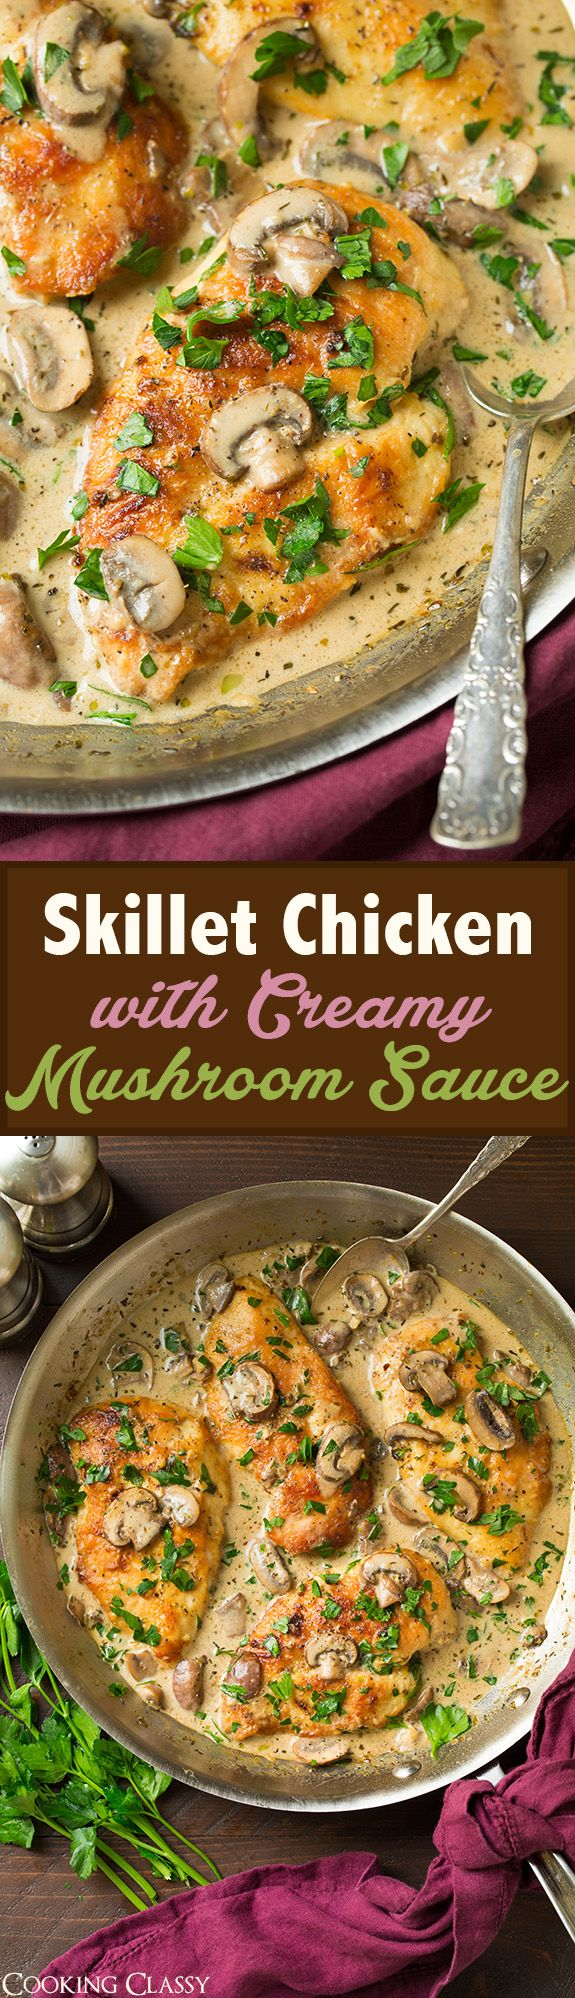 Skillet Chicken with Creamy Mushroom Sauce - flavorful and delicious!! Loved the creamy mushroom sauce!